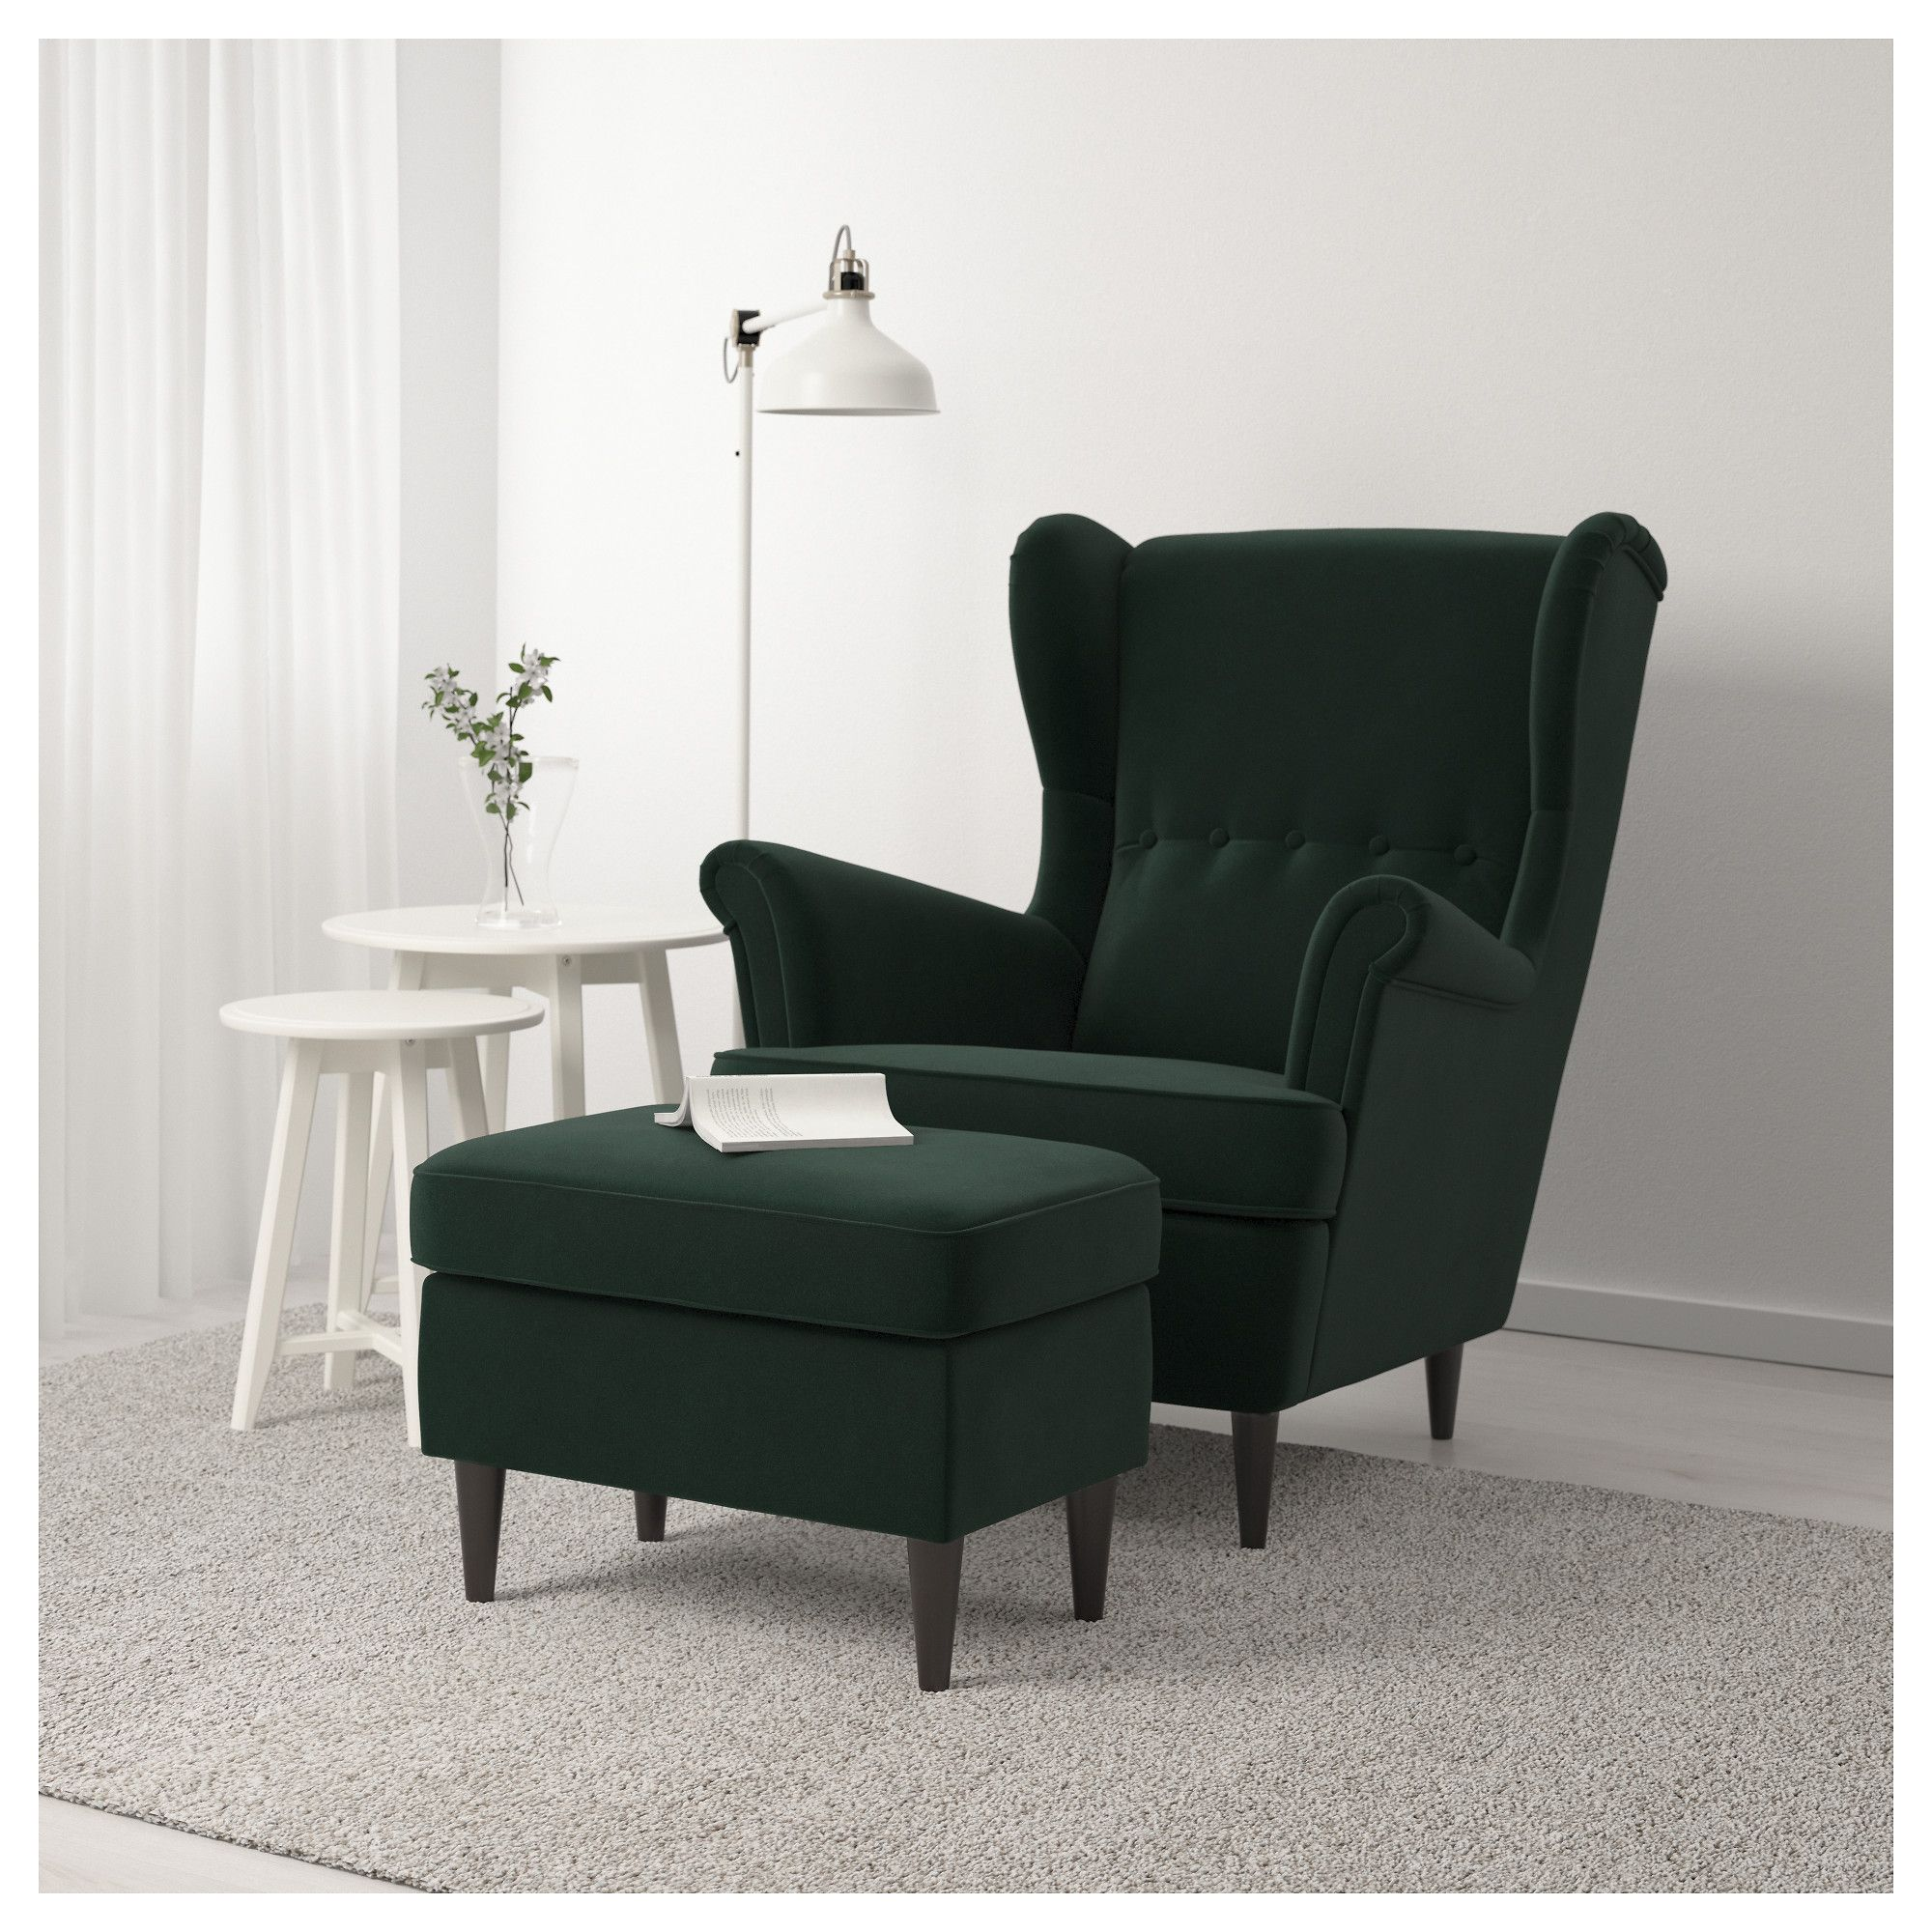 Furniture and Home Furnishings | Green armchair, Ikea ...